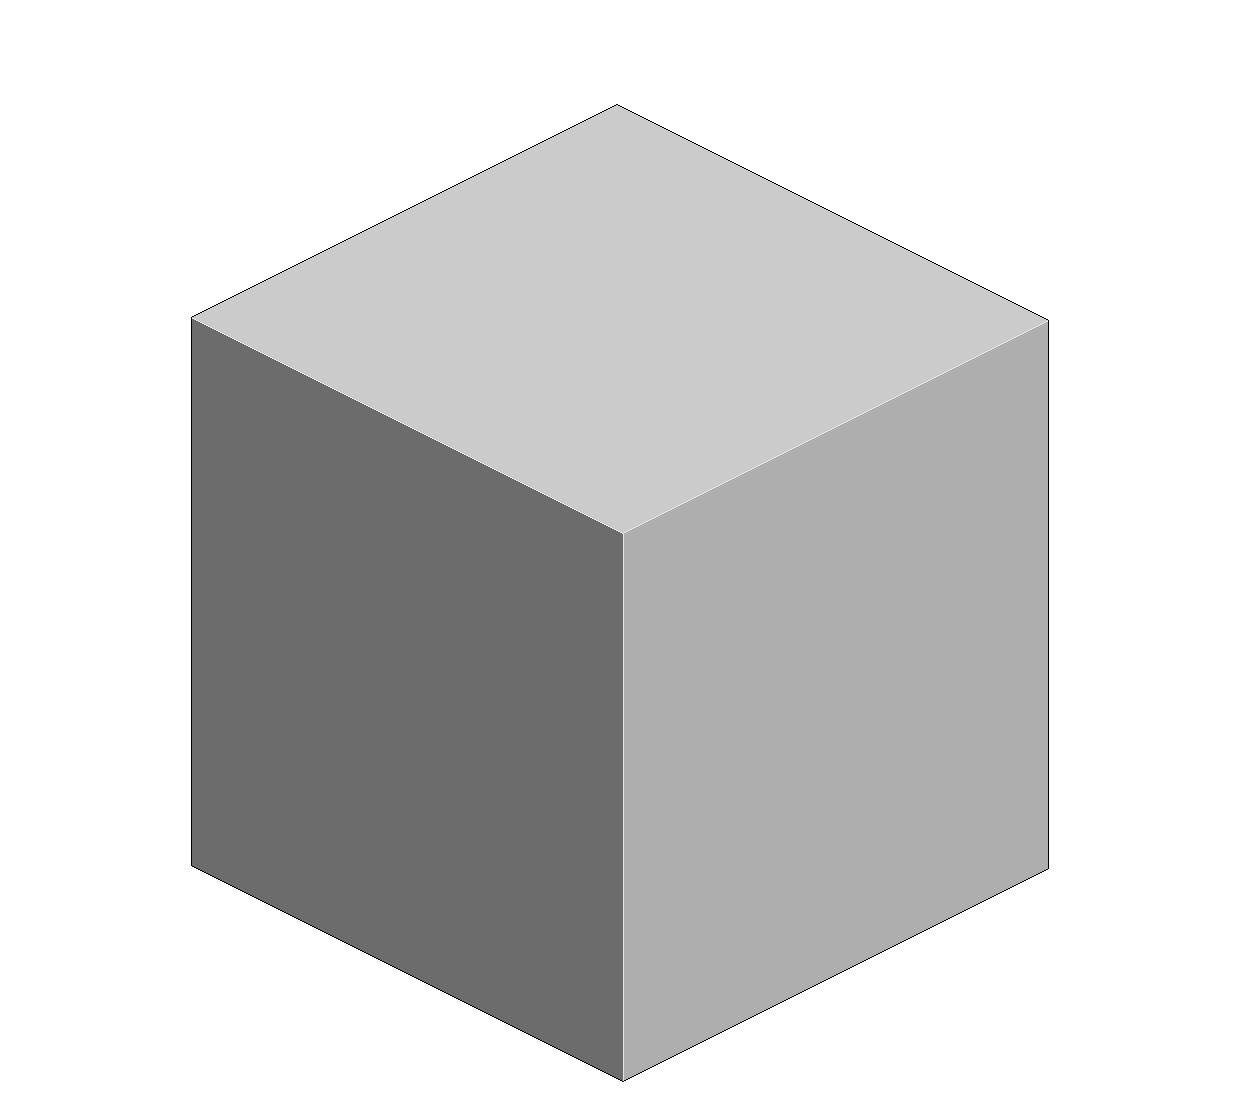 Cube PNG Images Transparent Free Download.